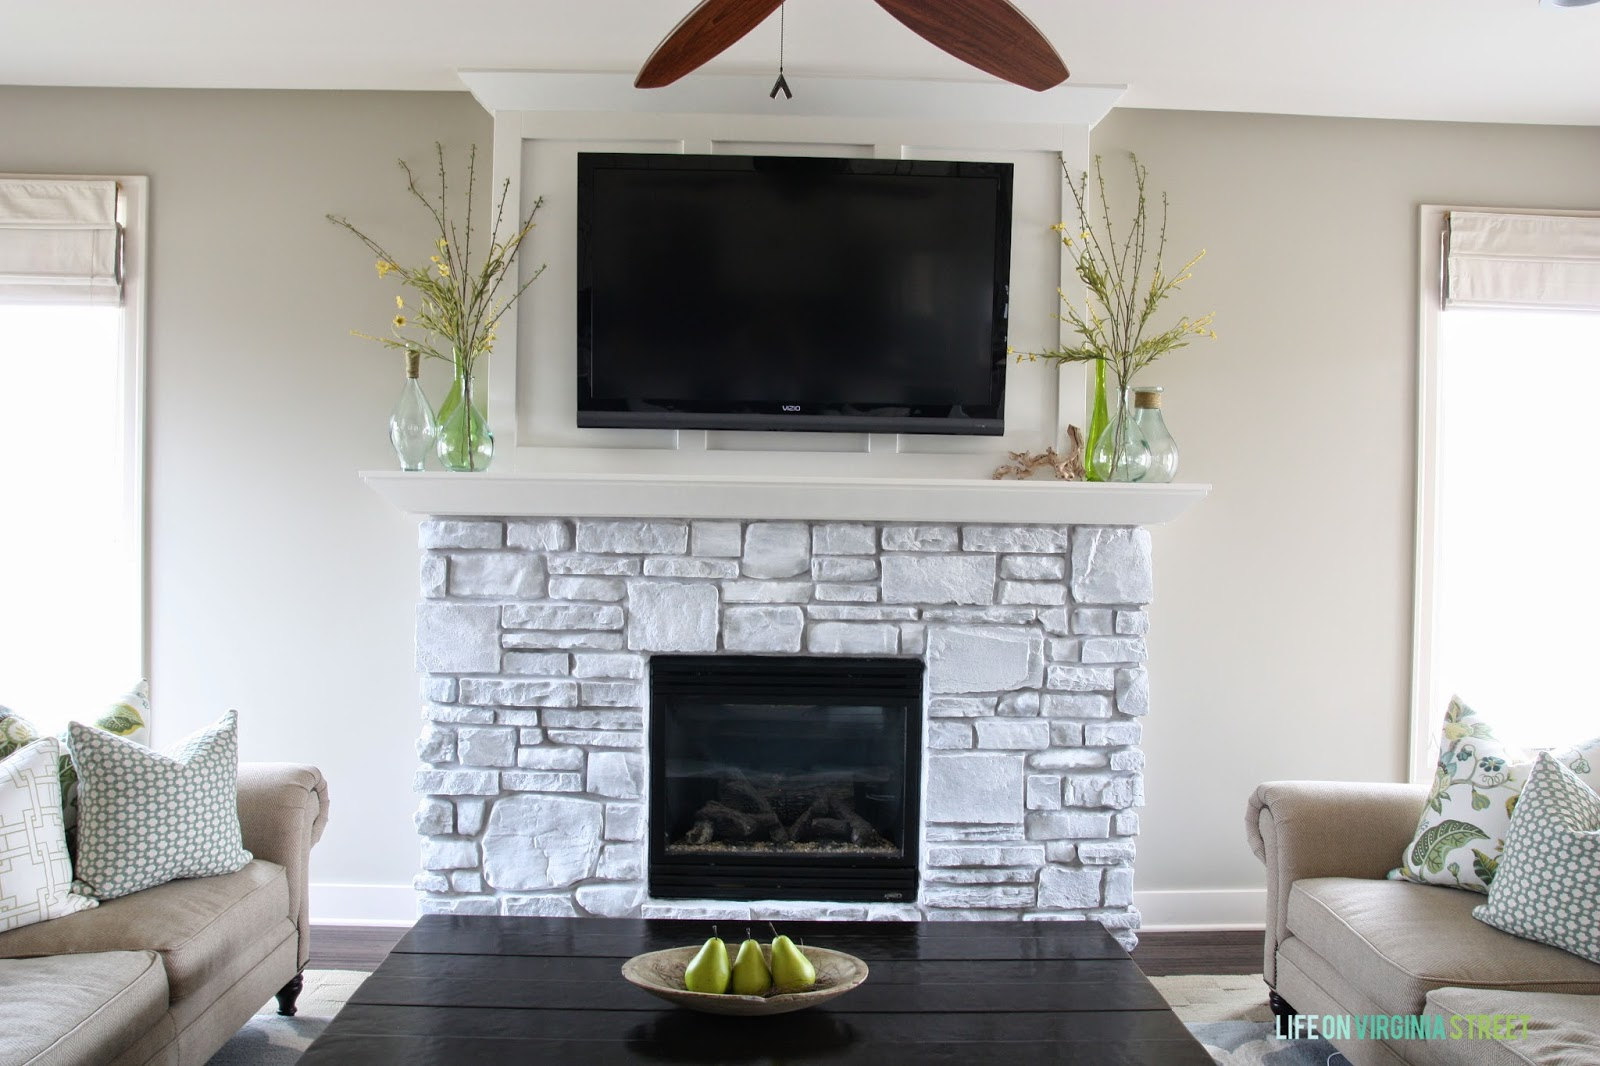 Dining Room Pendant Light White Washed Stone Fireplace Life On Virginia Street